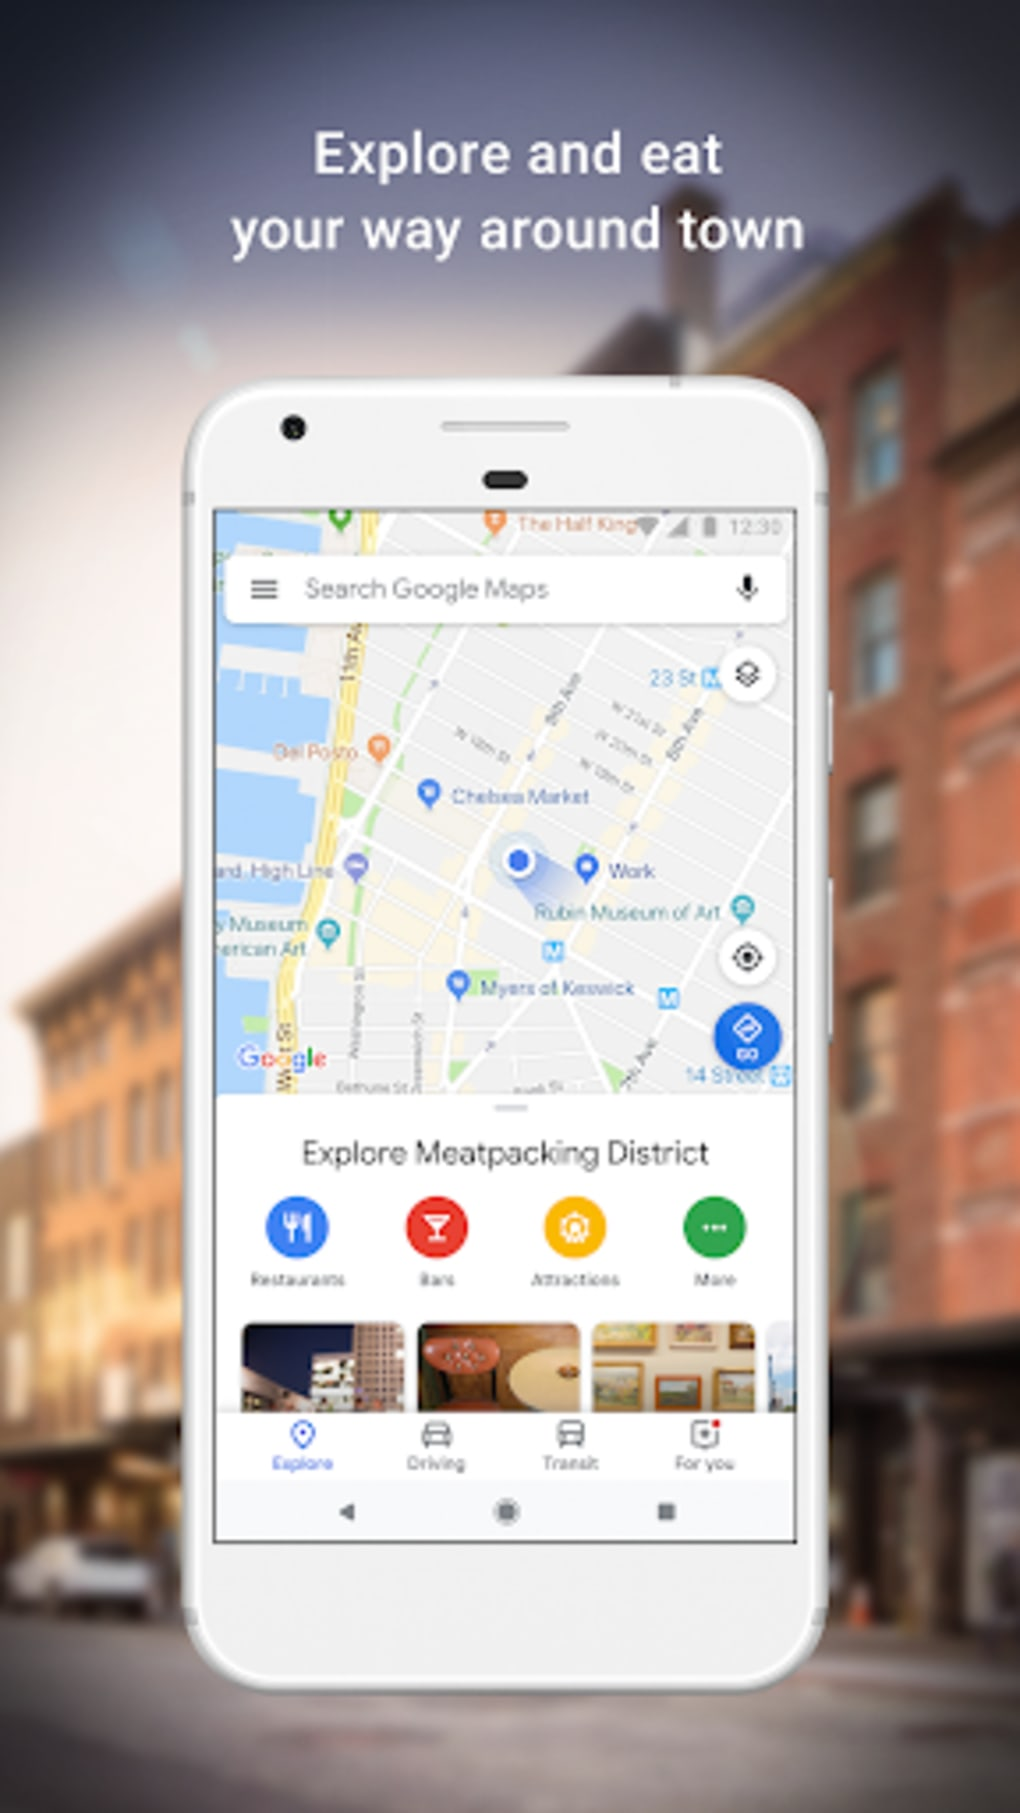 Google Maps APK for Android - Download on download blackberry, download windows, download steam, download file, download on chrome, download internet explorer, download android ice cream, download android keyboard, download ios, download on apple, download linux, download free, download on psp, download opera,